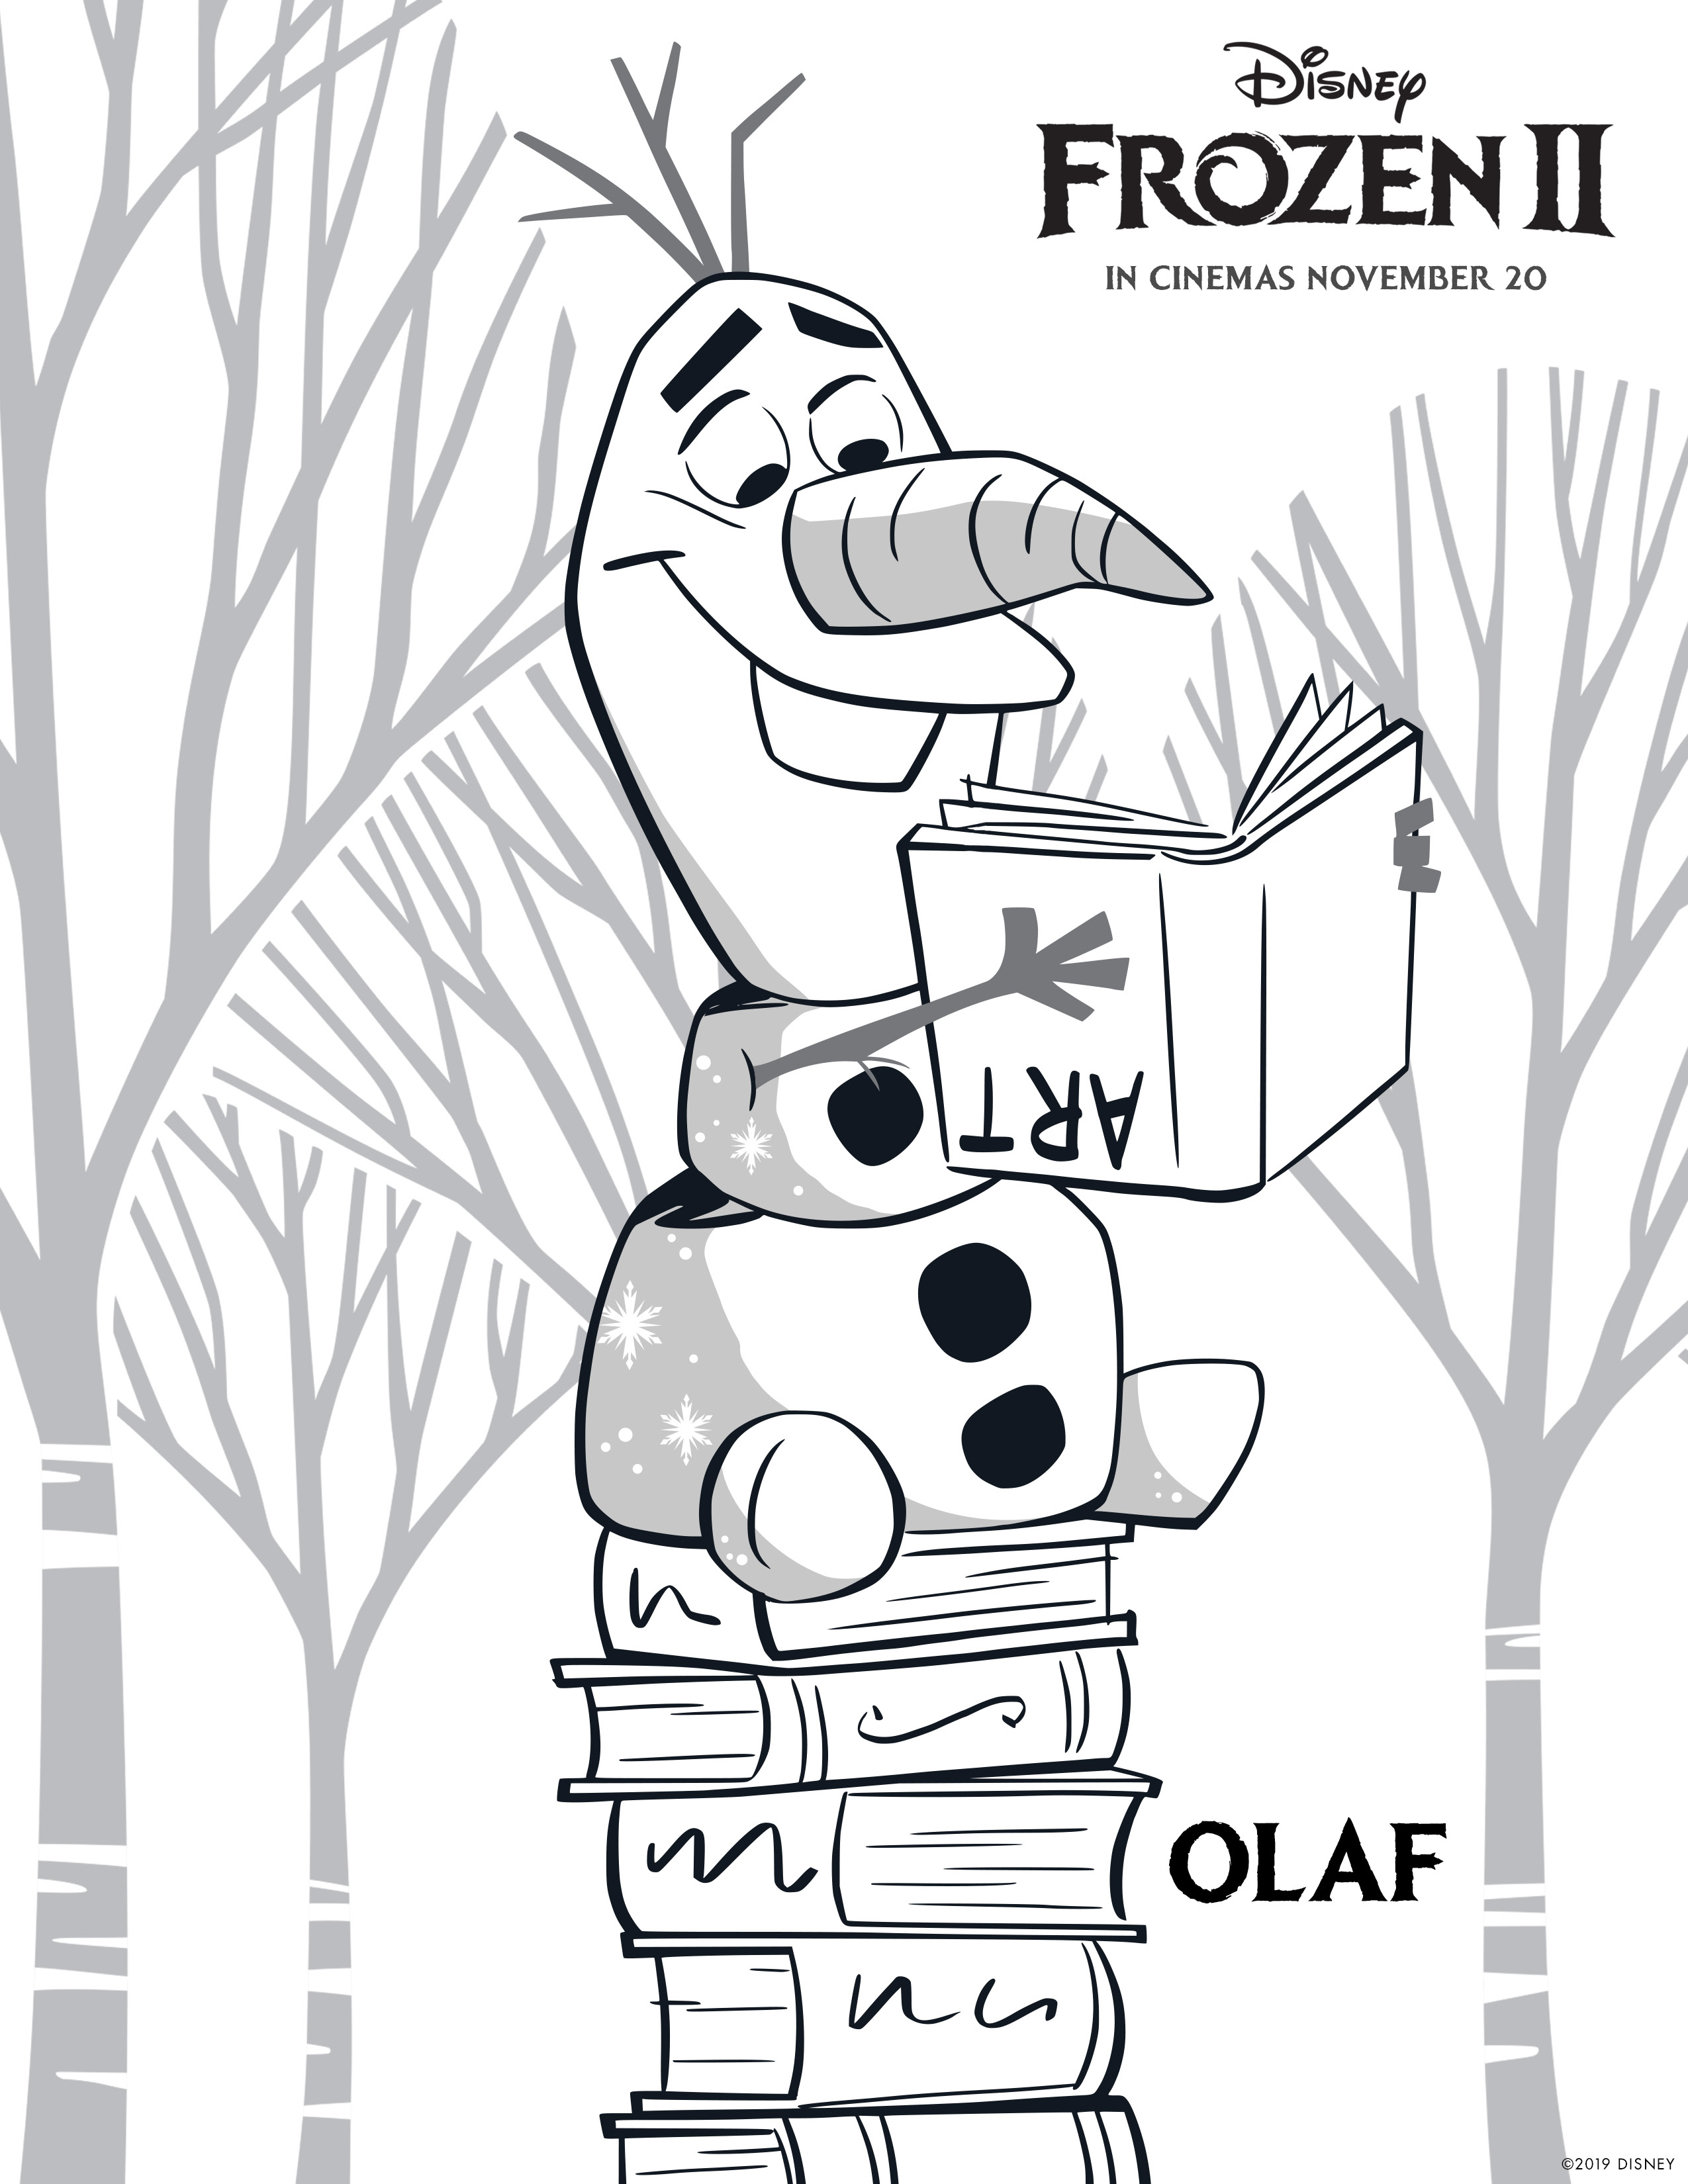 Olaf And Sven From Disney Frozen 2 Coloring Pages Printable | 3300x2550